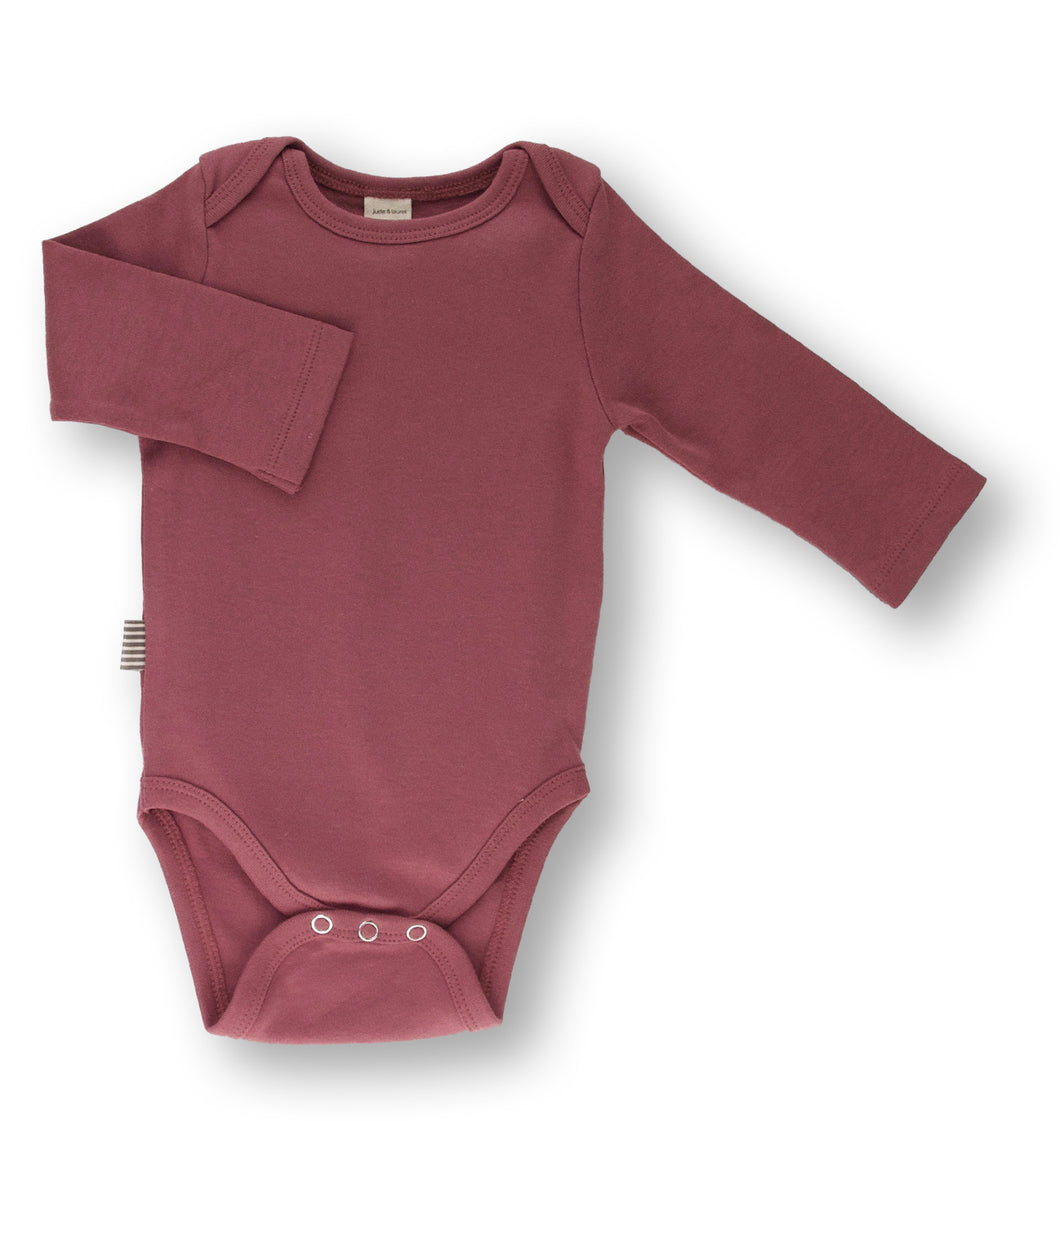 Fave Long Sleeve Onesie ~ Rose Brown